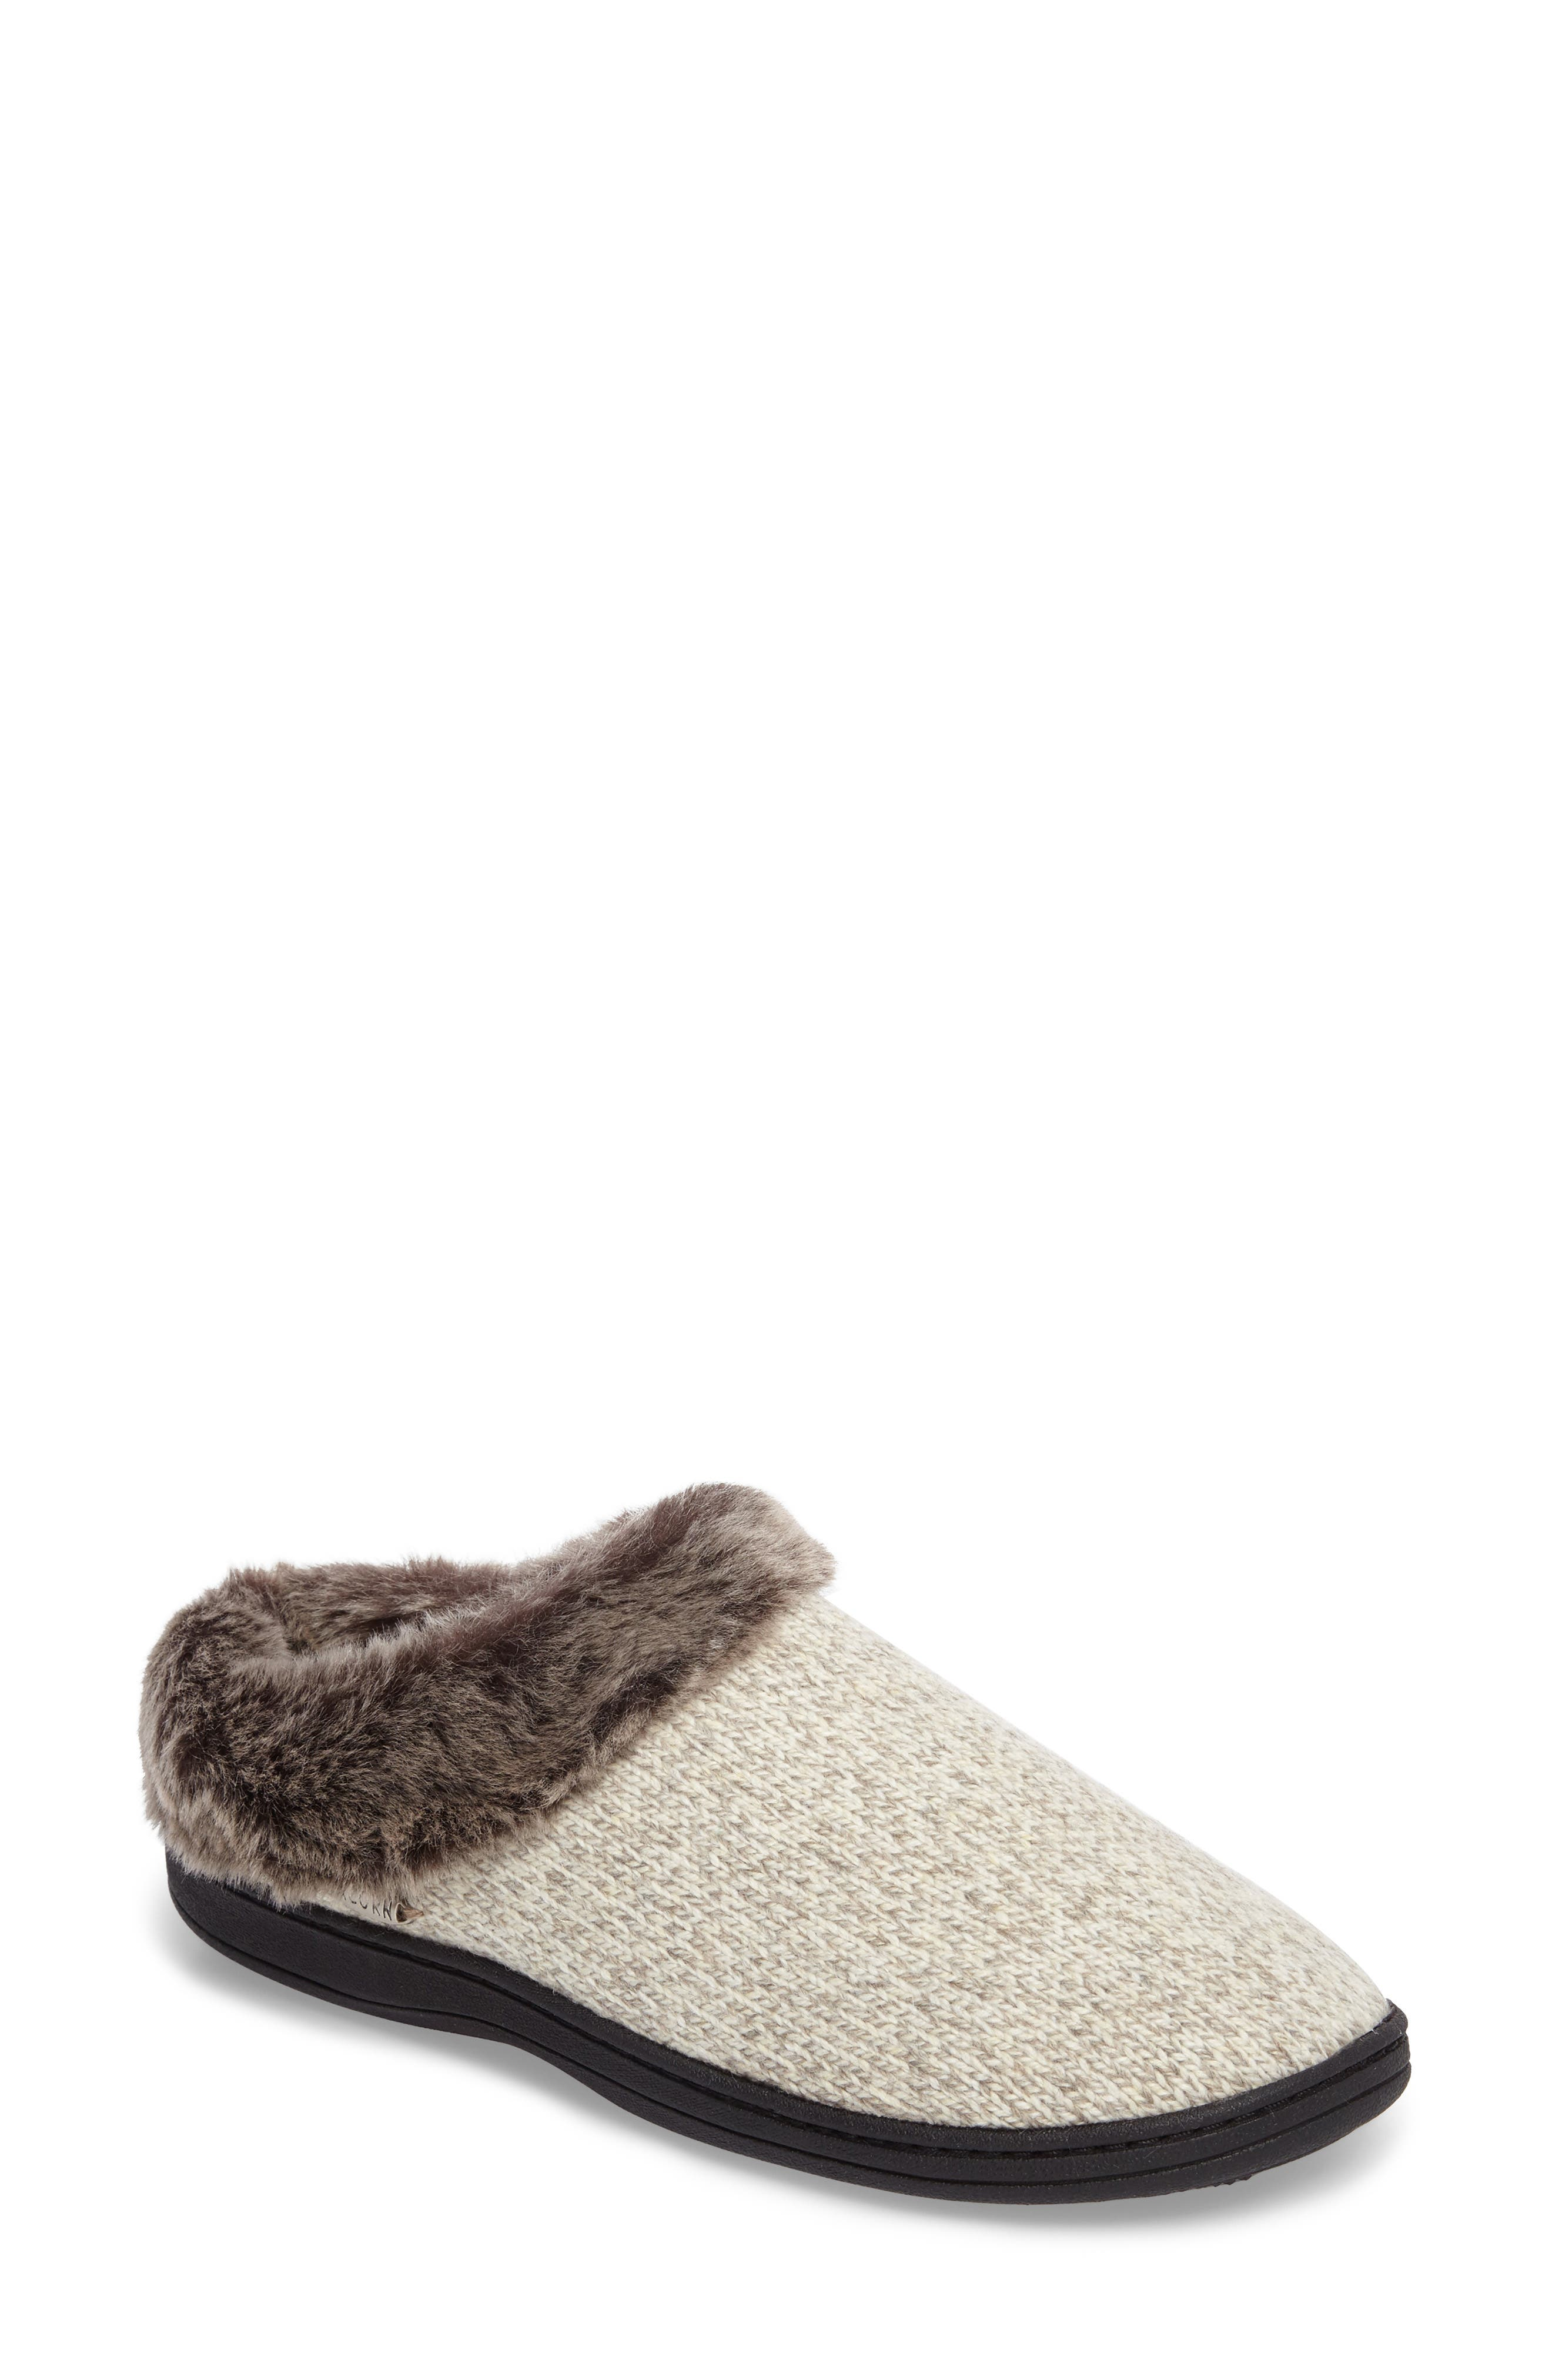 Chinchilla Faux Fur Slipper,                             Main thumbnail 1, color,                             CHARCOAL HEATHER